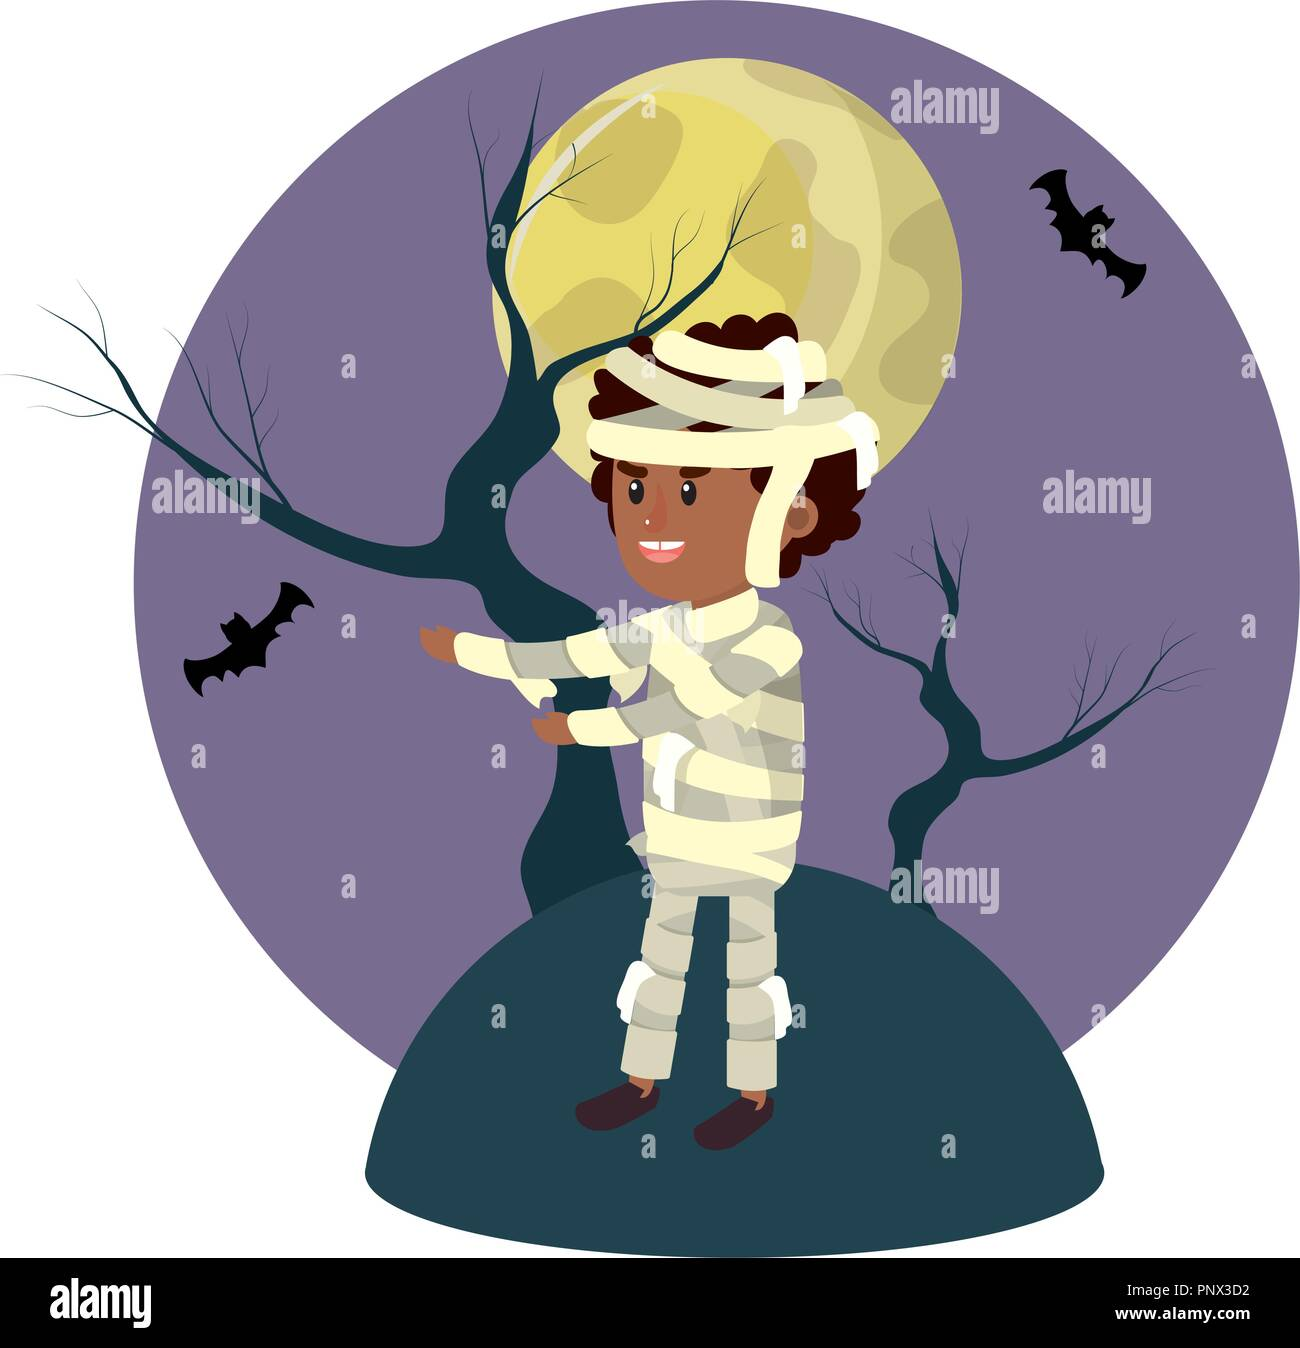 boy with mommy costume and full moon - Stock Image